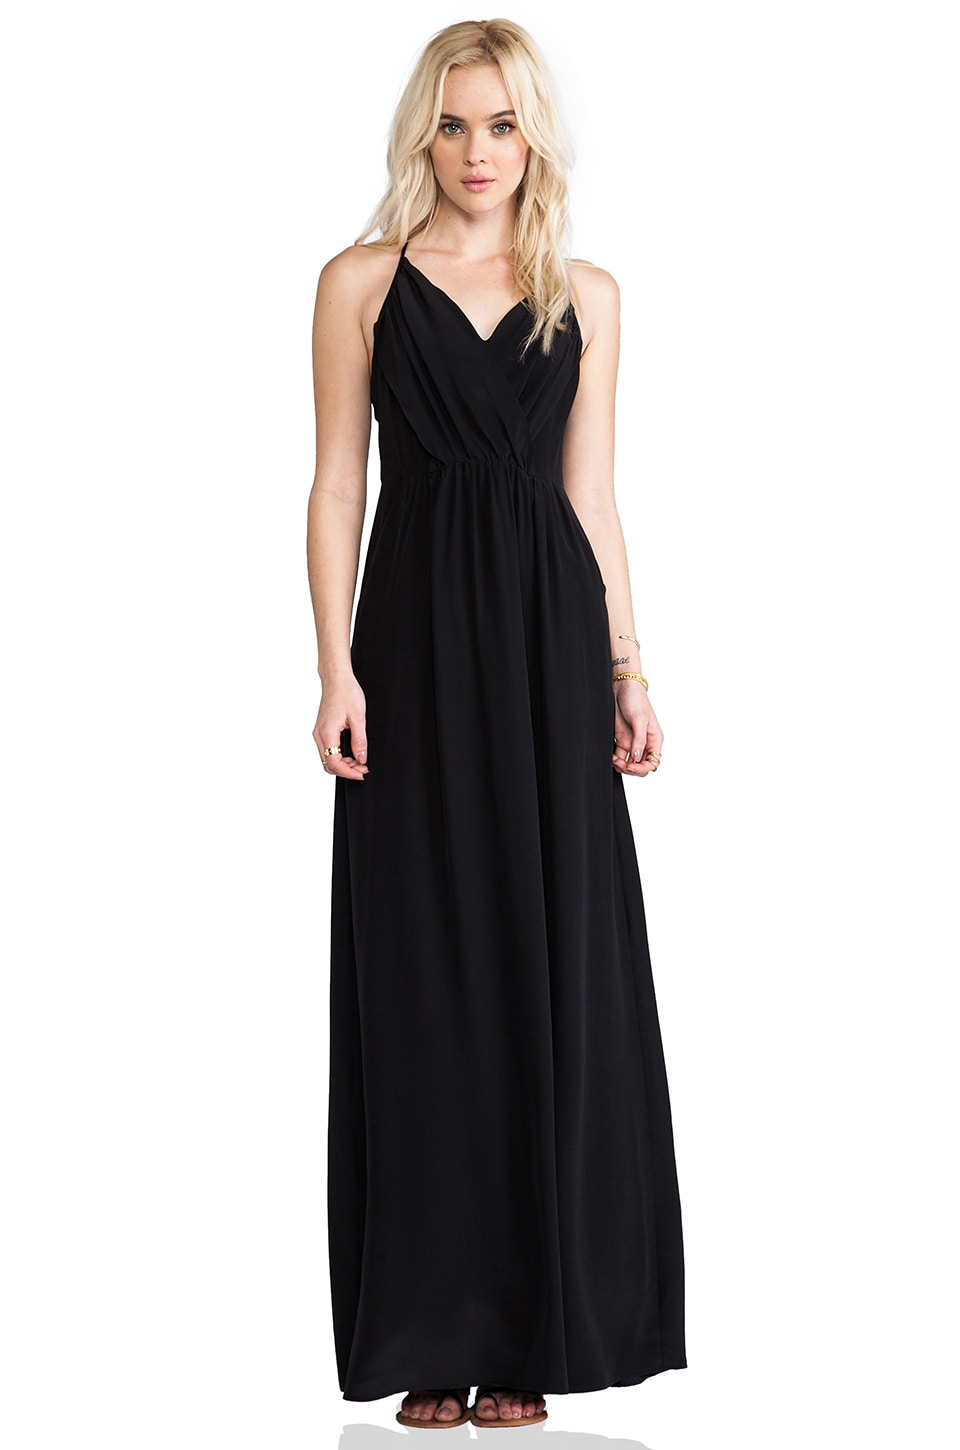 Yumi Kim Daydreamer Maxi Dress in Black